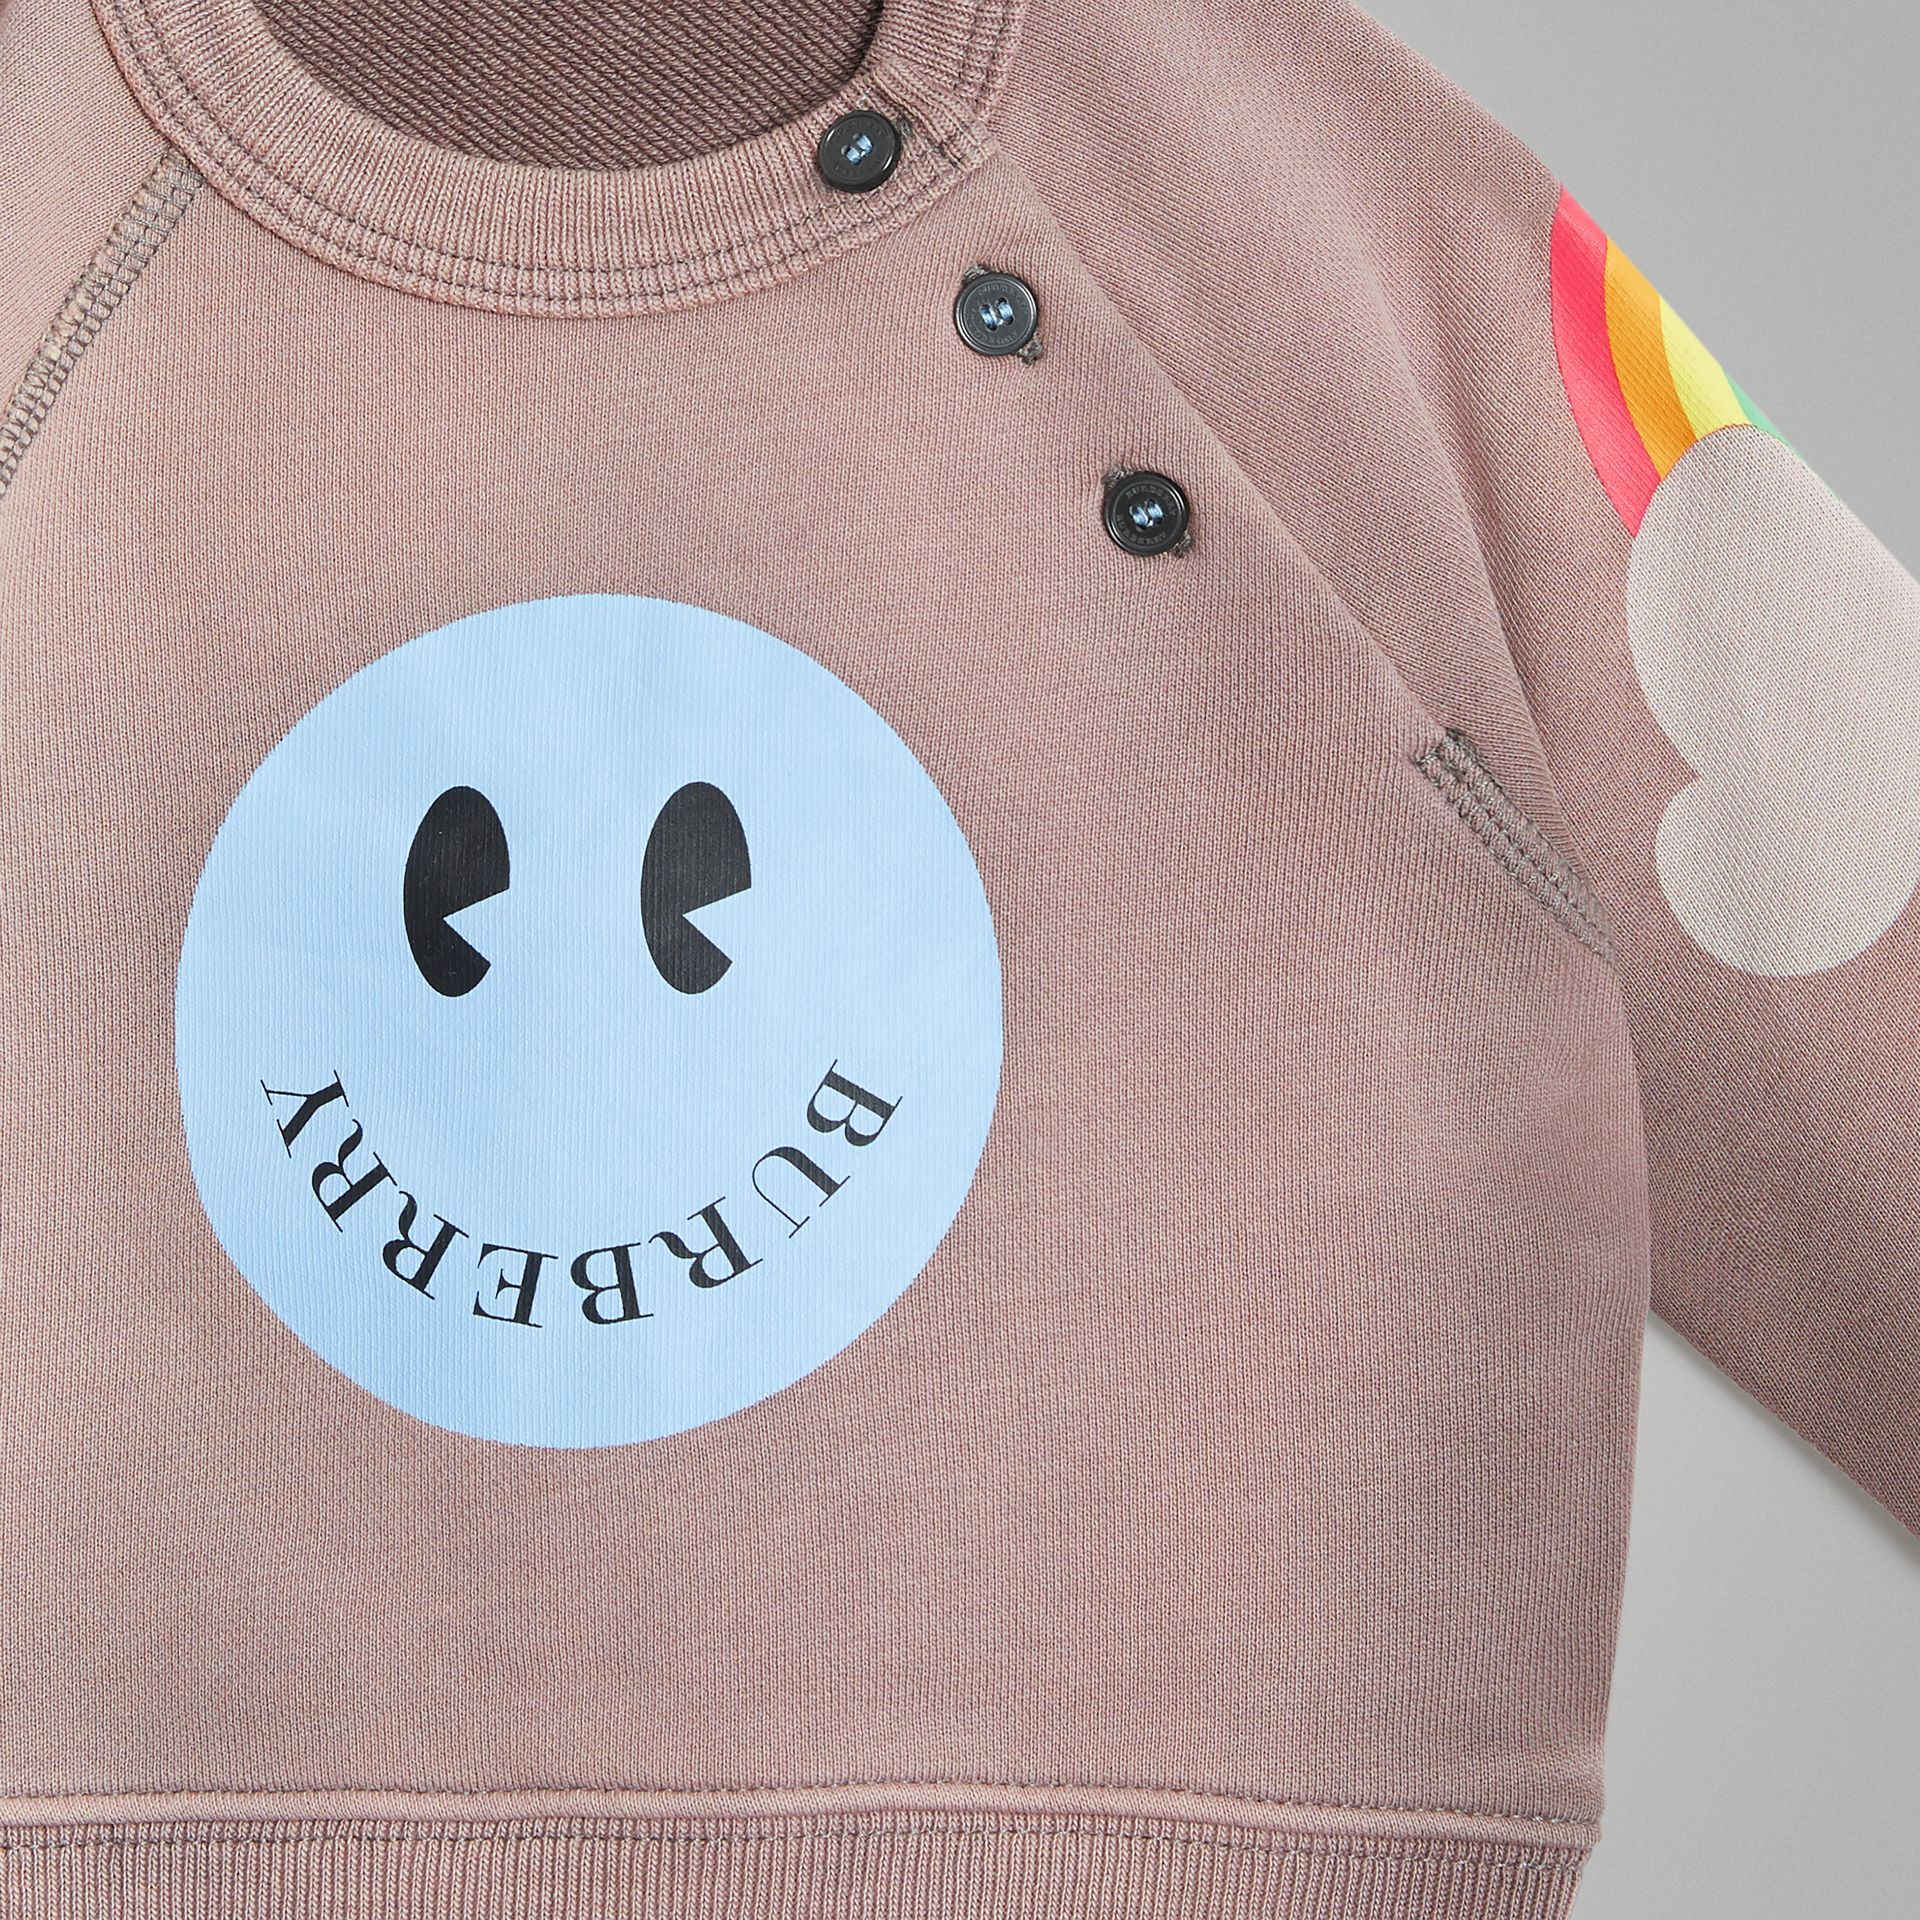 Smiley Face Print Cotton Sweatshirt in Mauve - Children | Burberry - gallery image 4